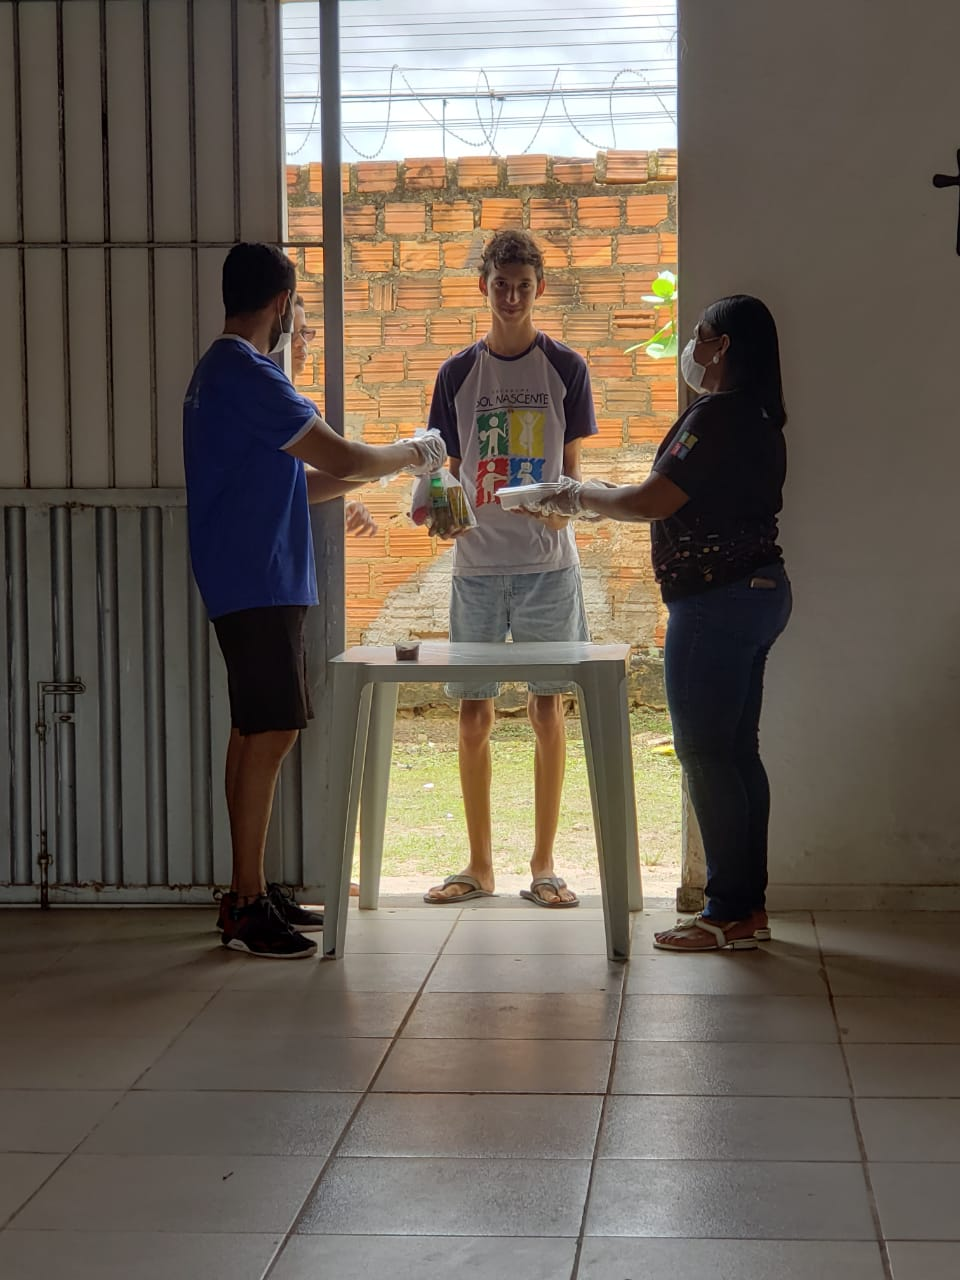 Equipe do Gedema entrega alimentos a adolescente integrante do programa